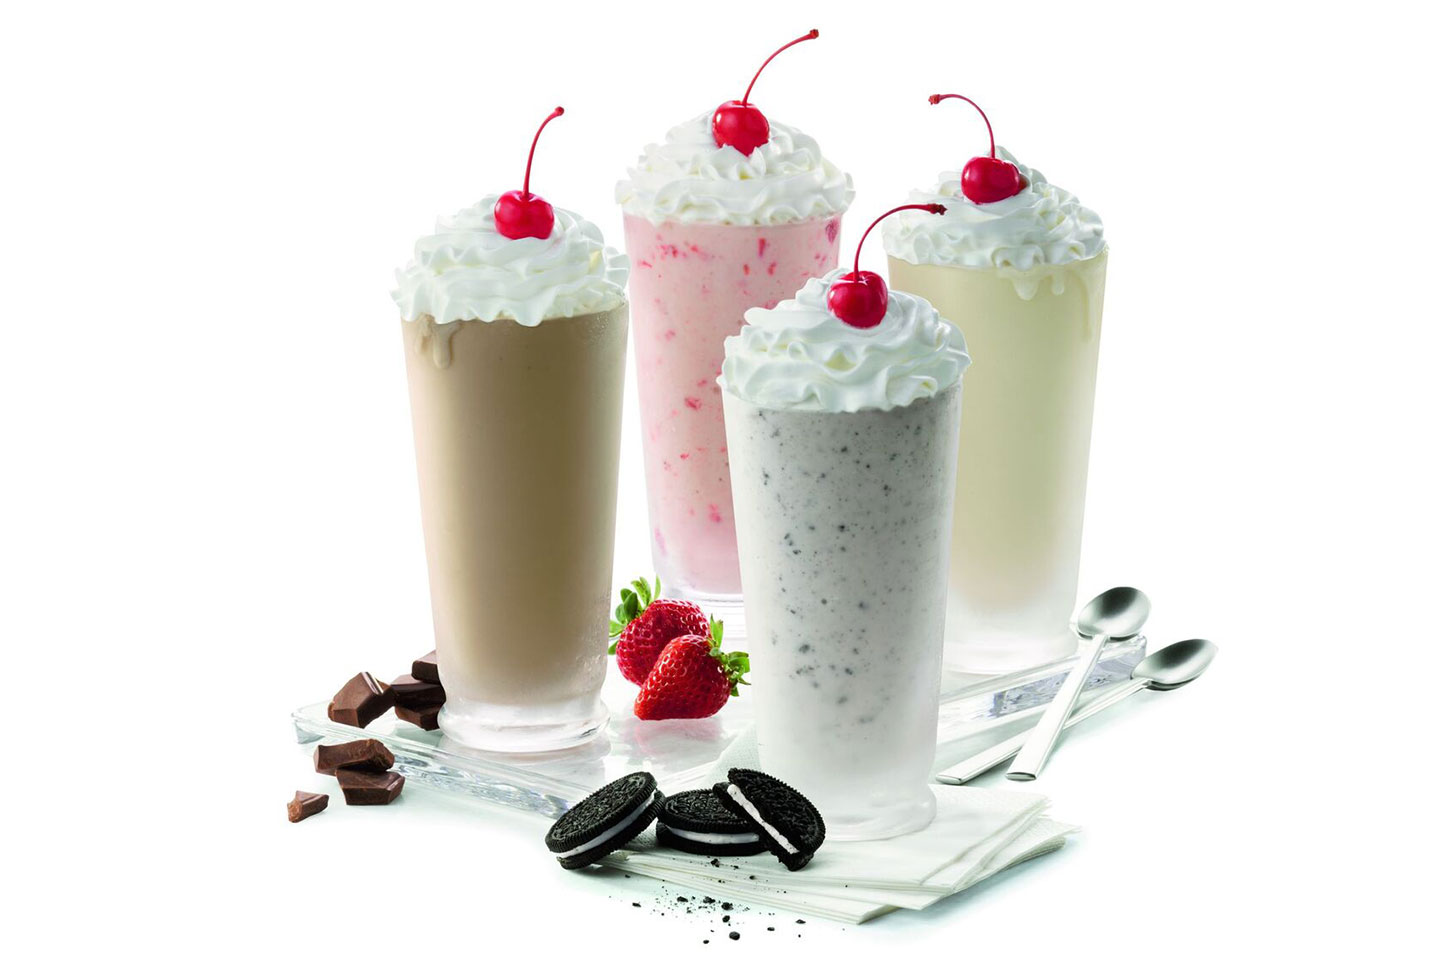 4 varieties of milkshakes